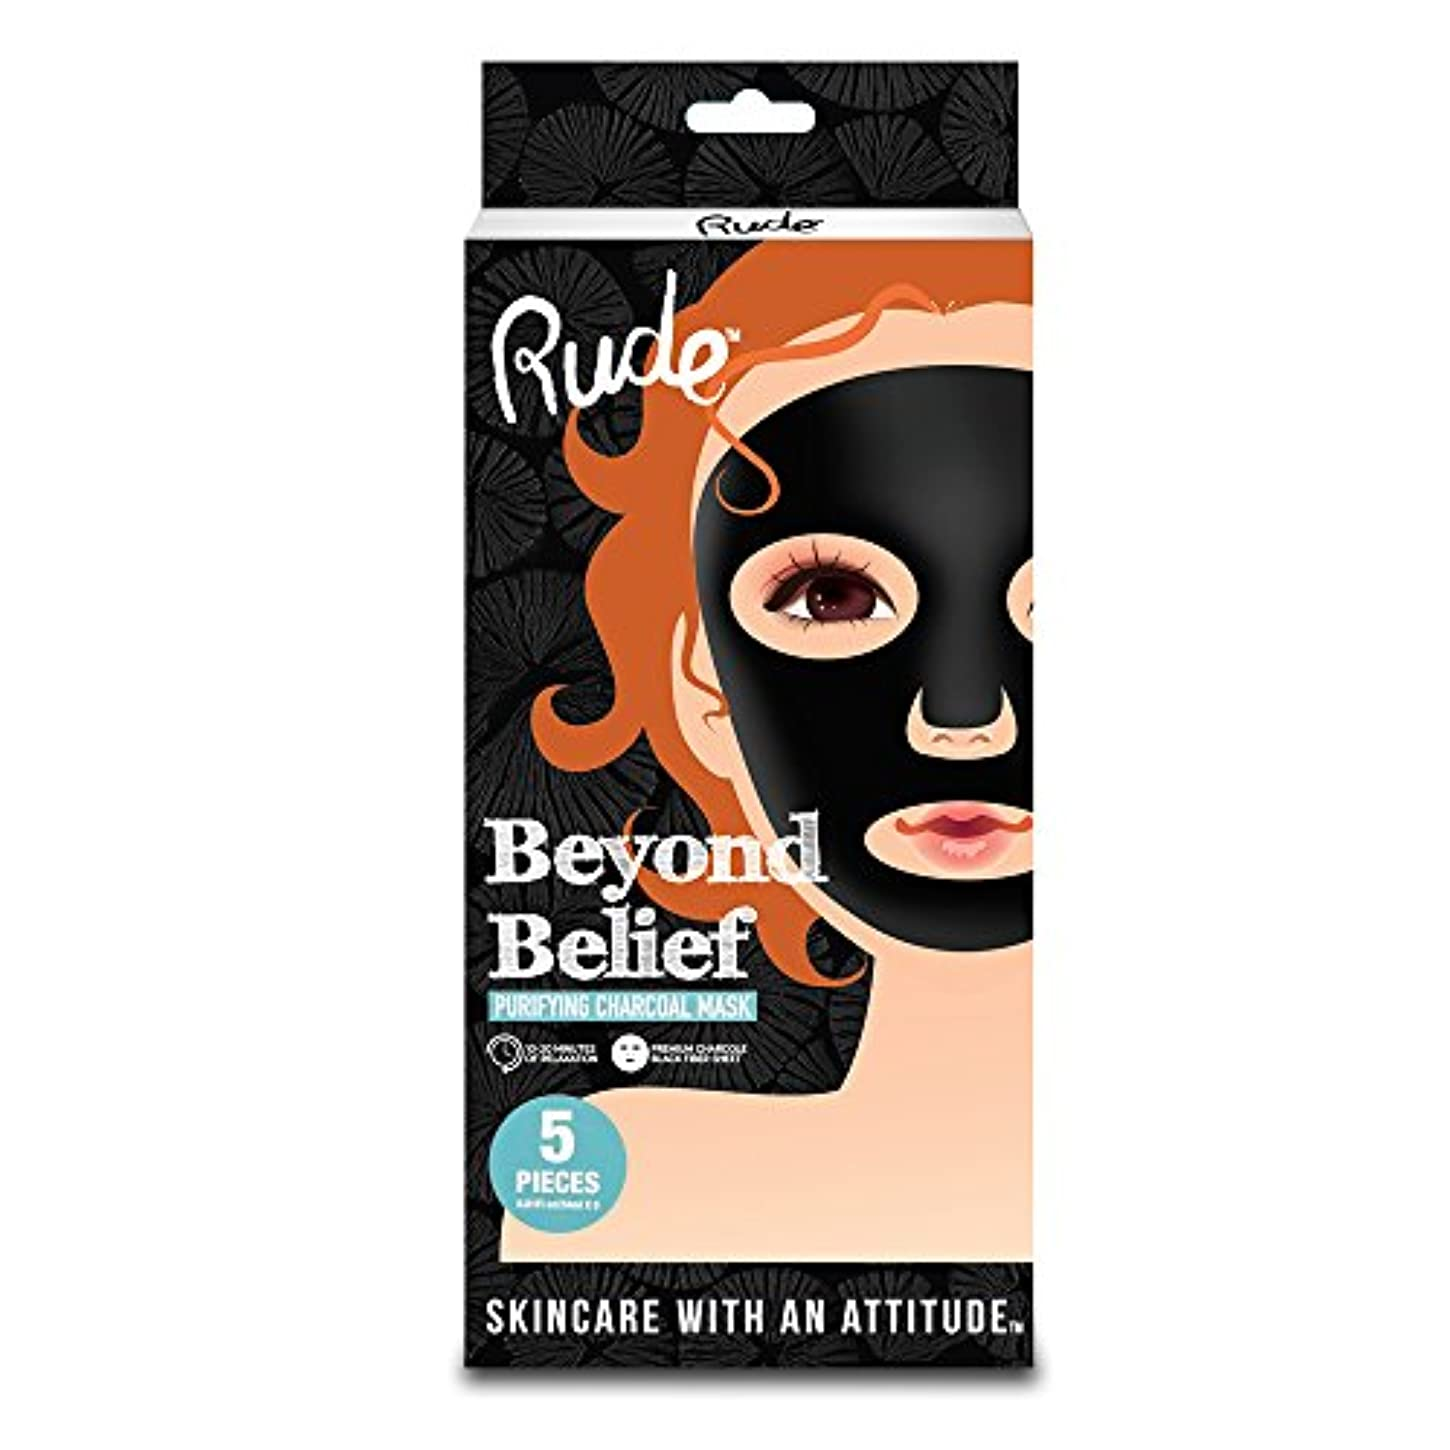 容疑者リネン仕出しますRUDE Beyond Belief Purifying Charcoal Mask 5 Piece Pack (並行輸入品)